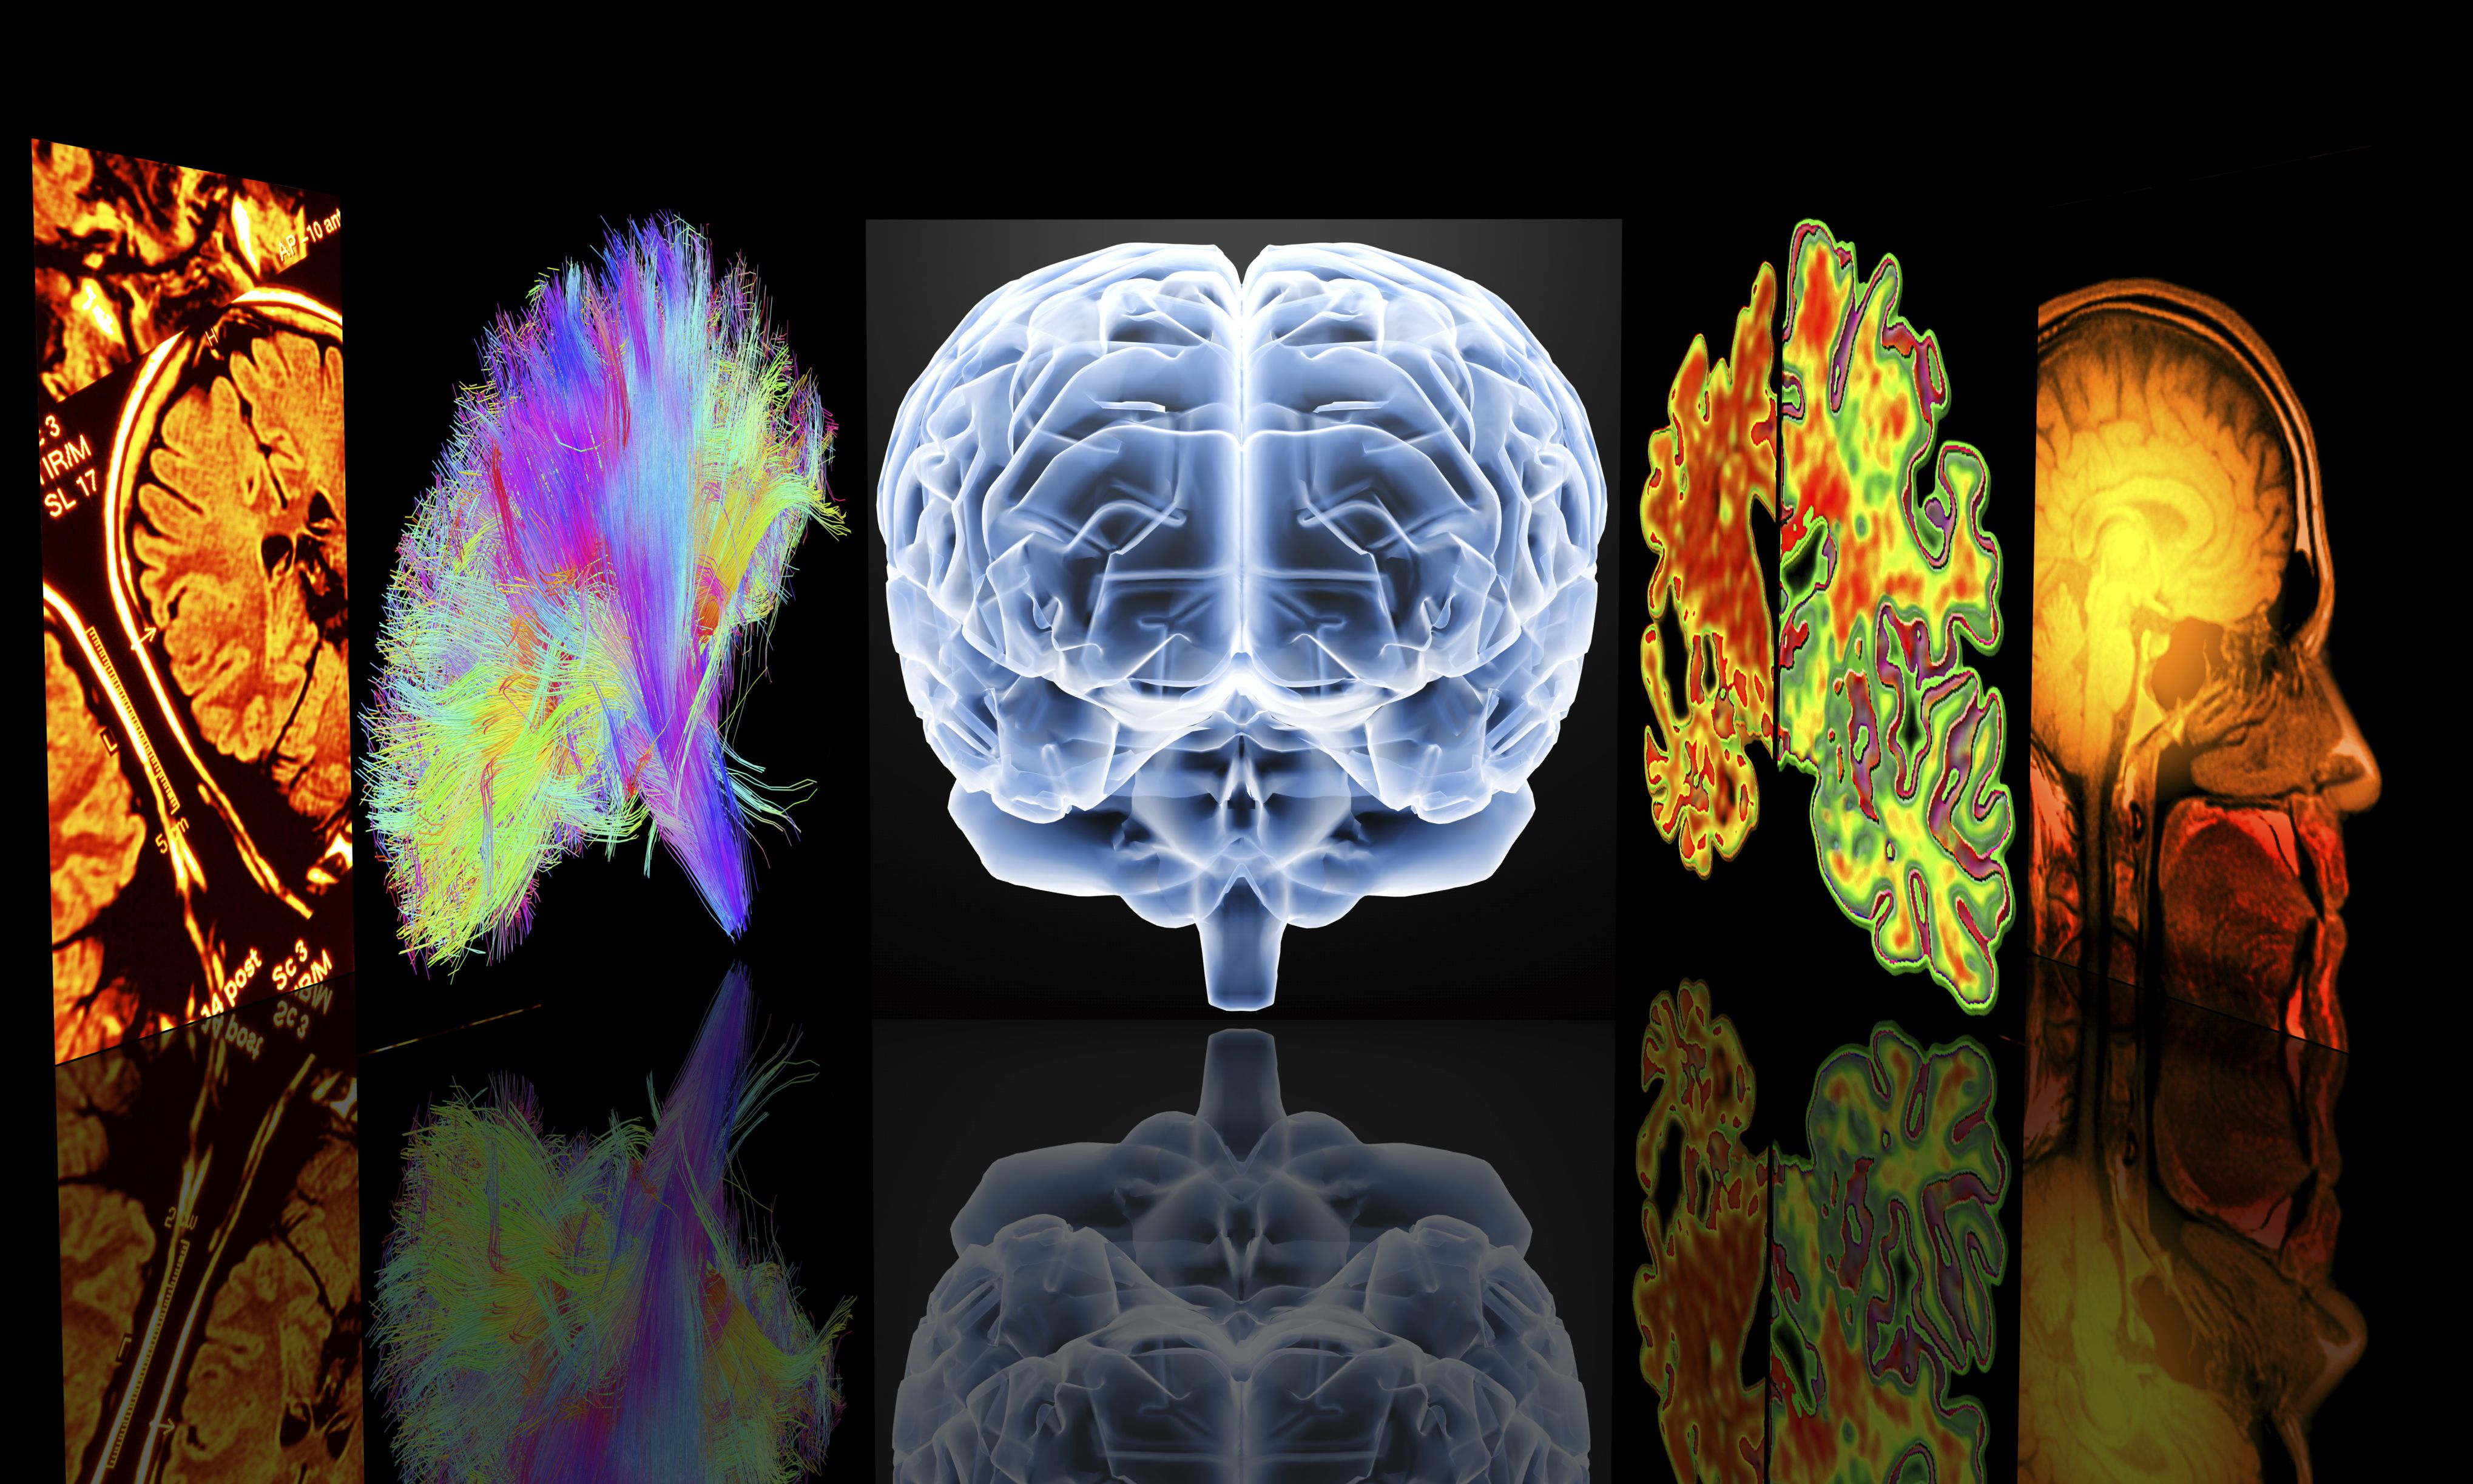 describe the likely signs and symptoms of dementia